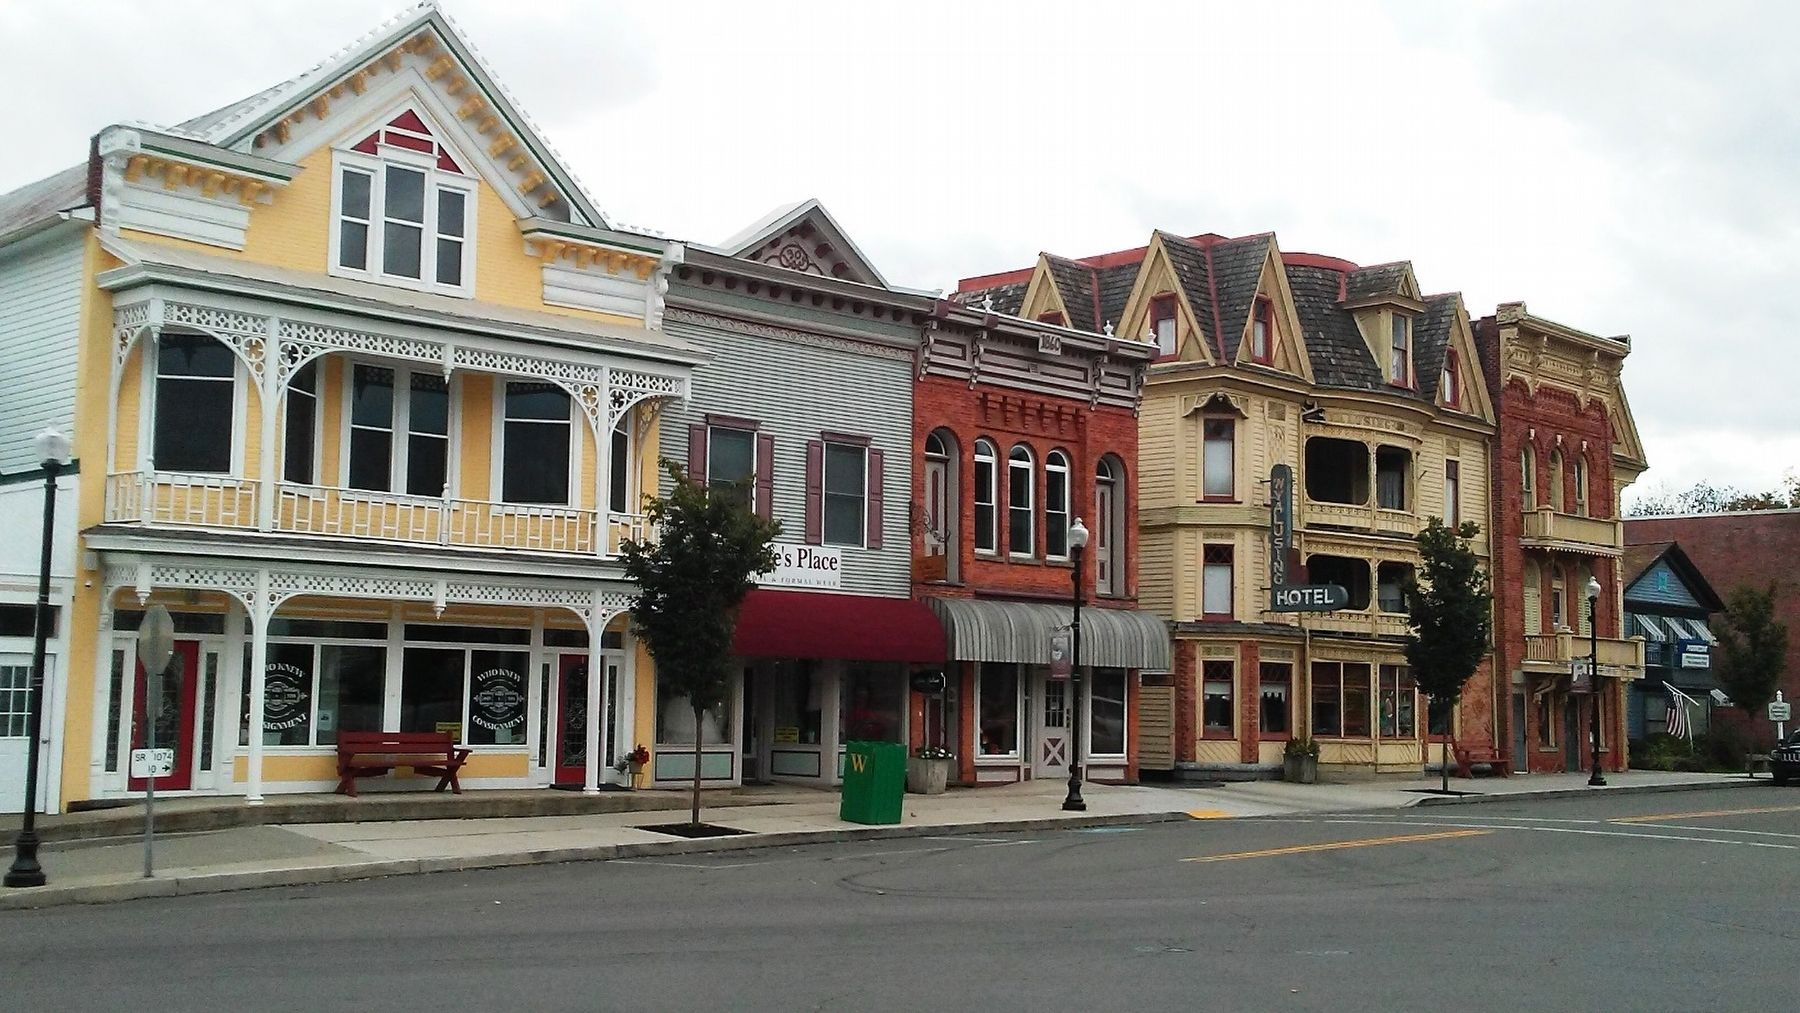 Wyalusing Borough Historic District Structures image. Click for full size.